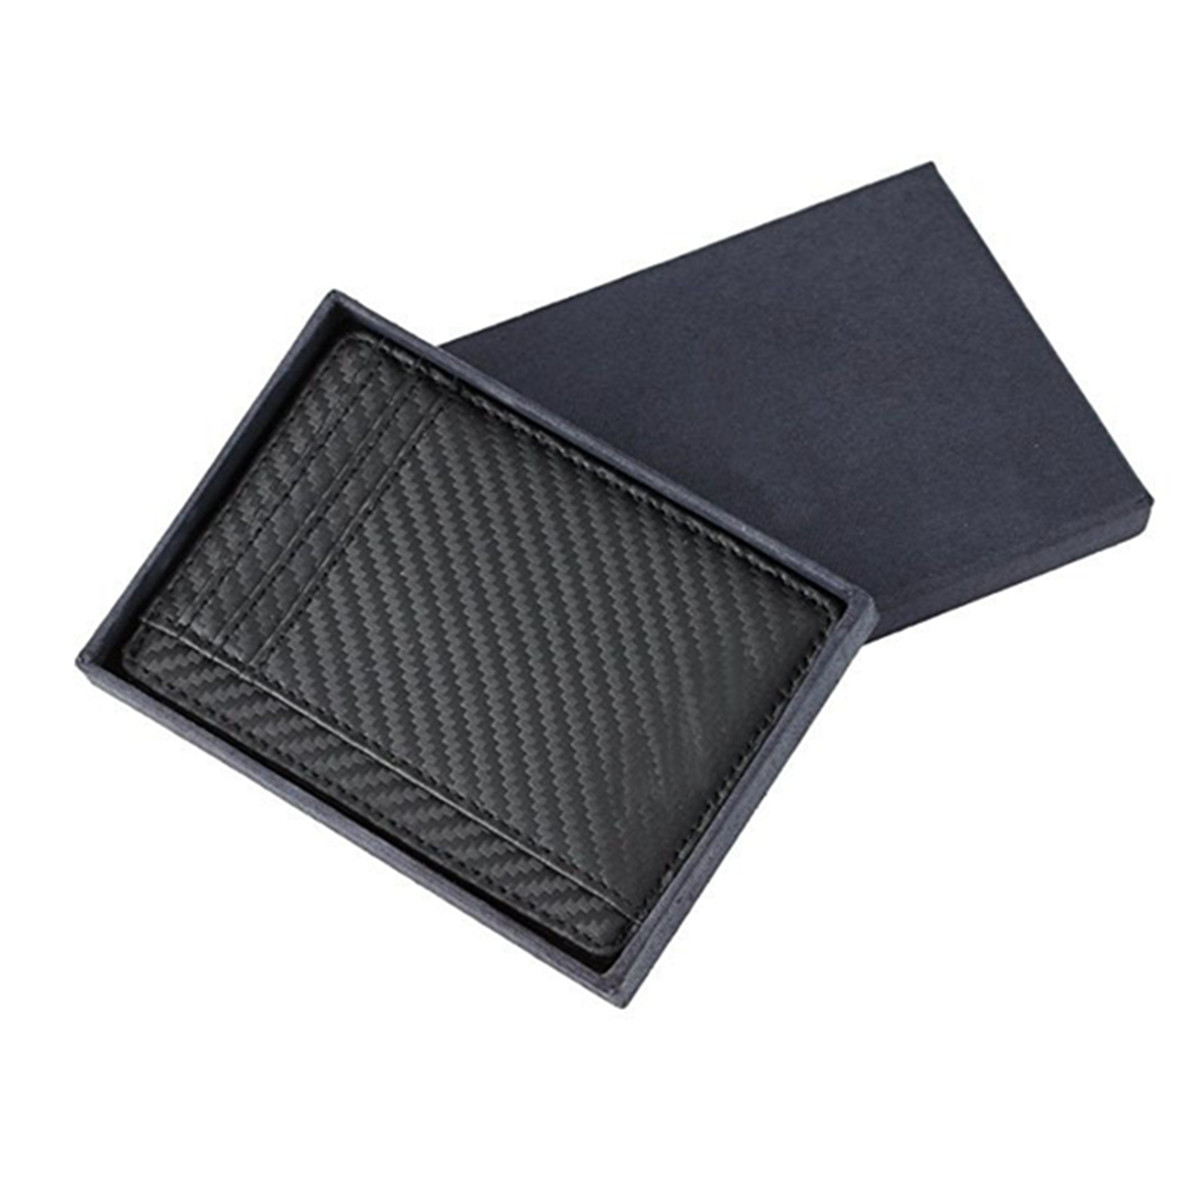 Men RFID Blocking Carbon Fiber Leather Wallet Short Purse Credit Card Holder Case